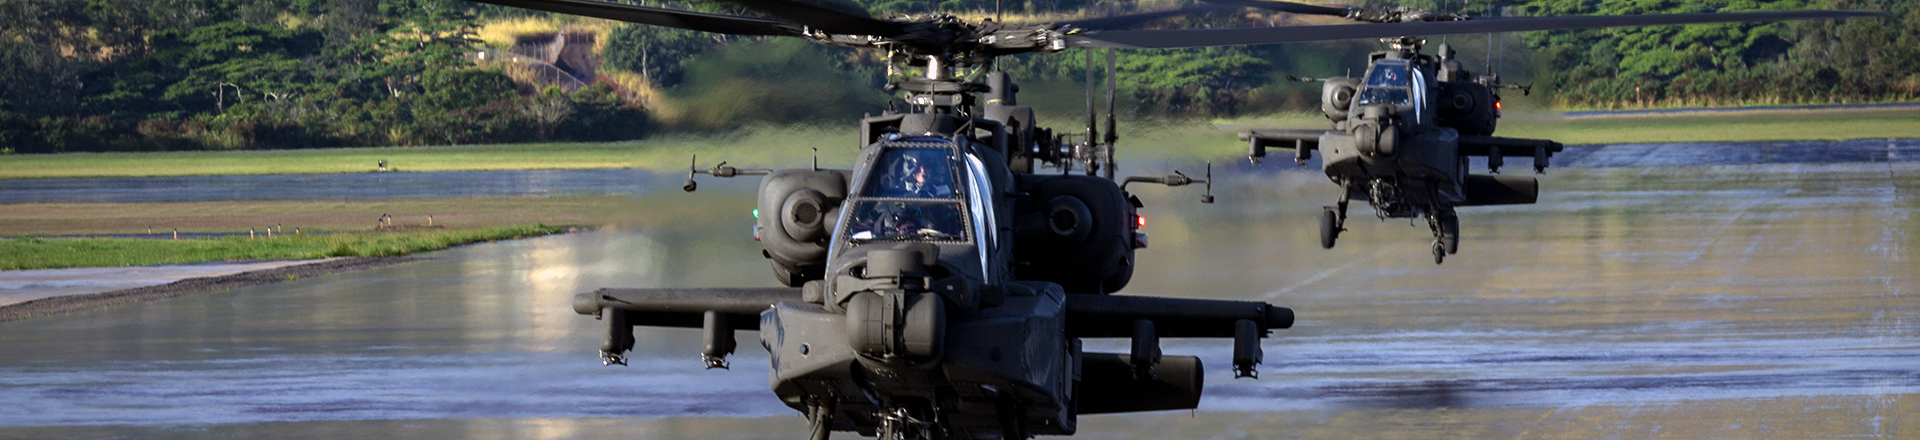 wp-band-image-apache-helicopter-1920×440-0917